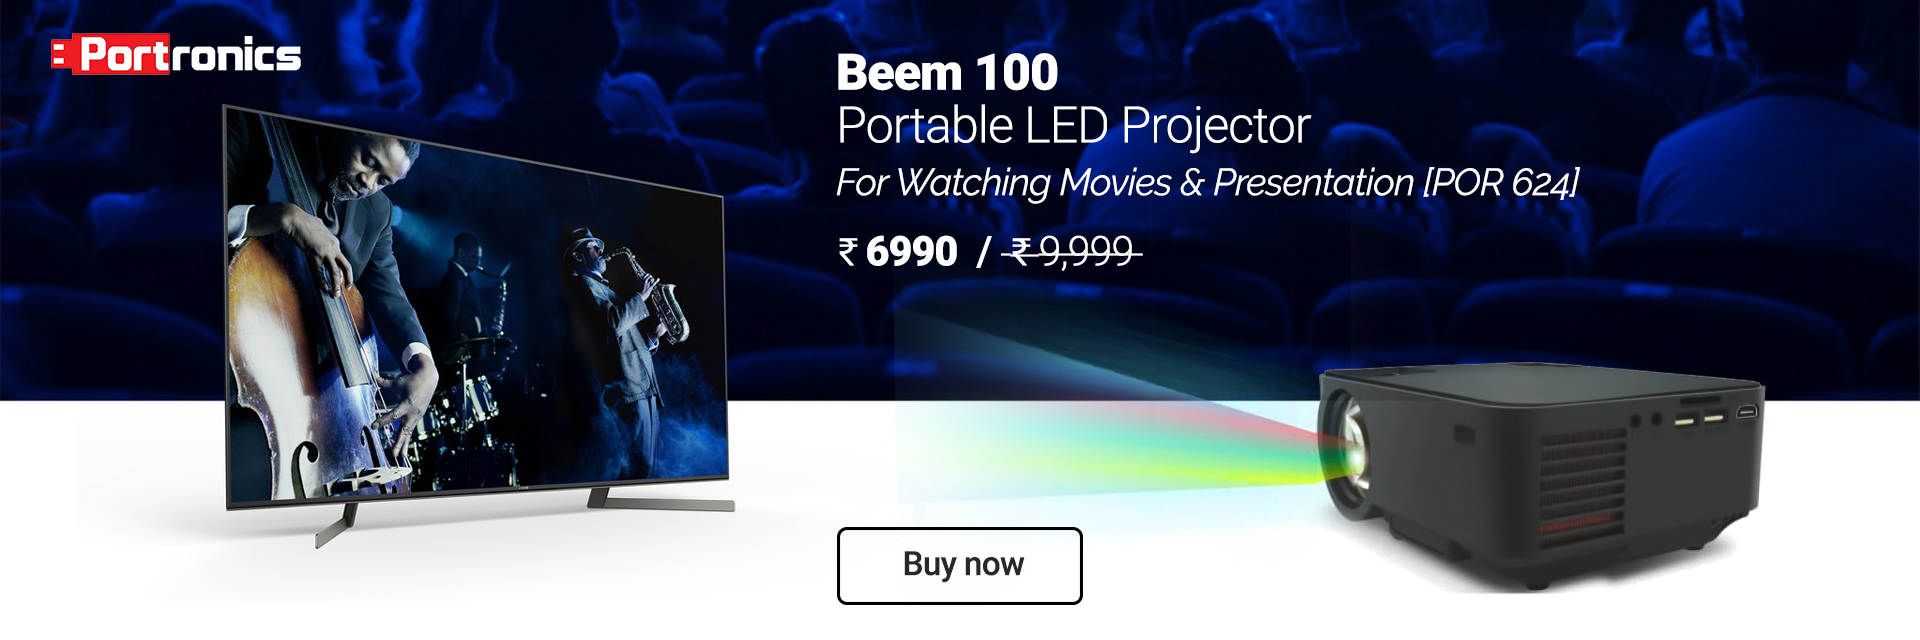 Portronics Beem 100 Portable LED Projector